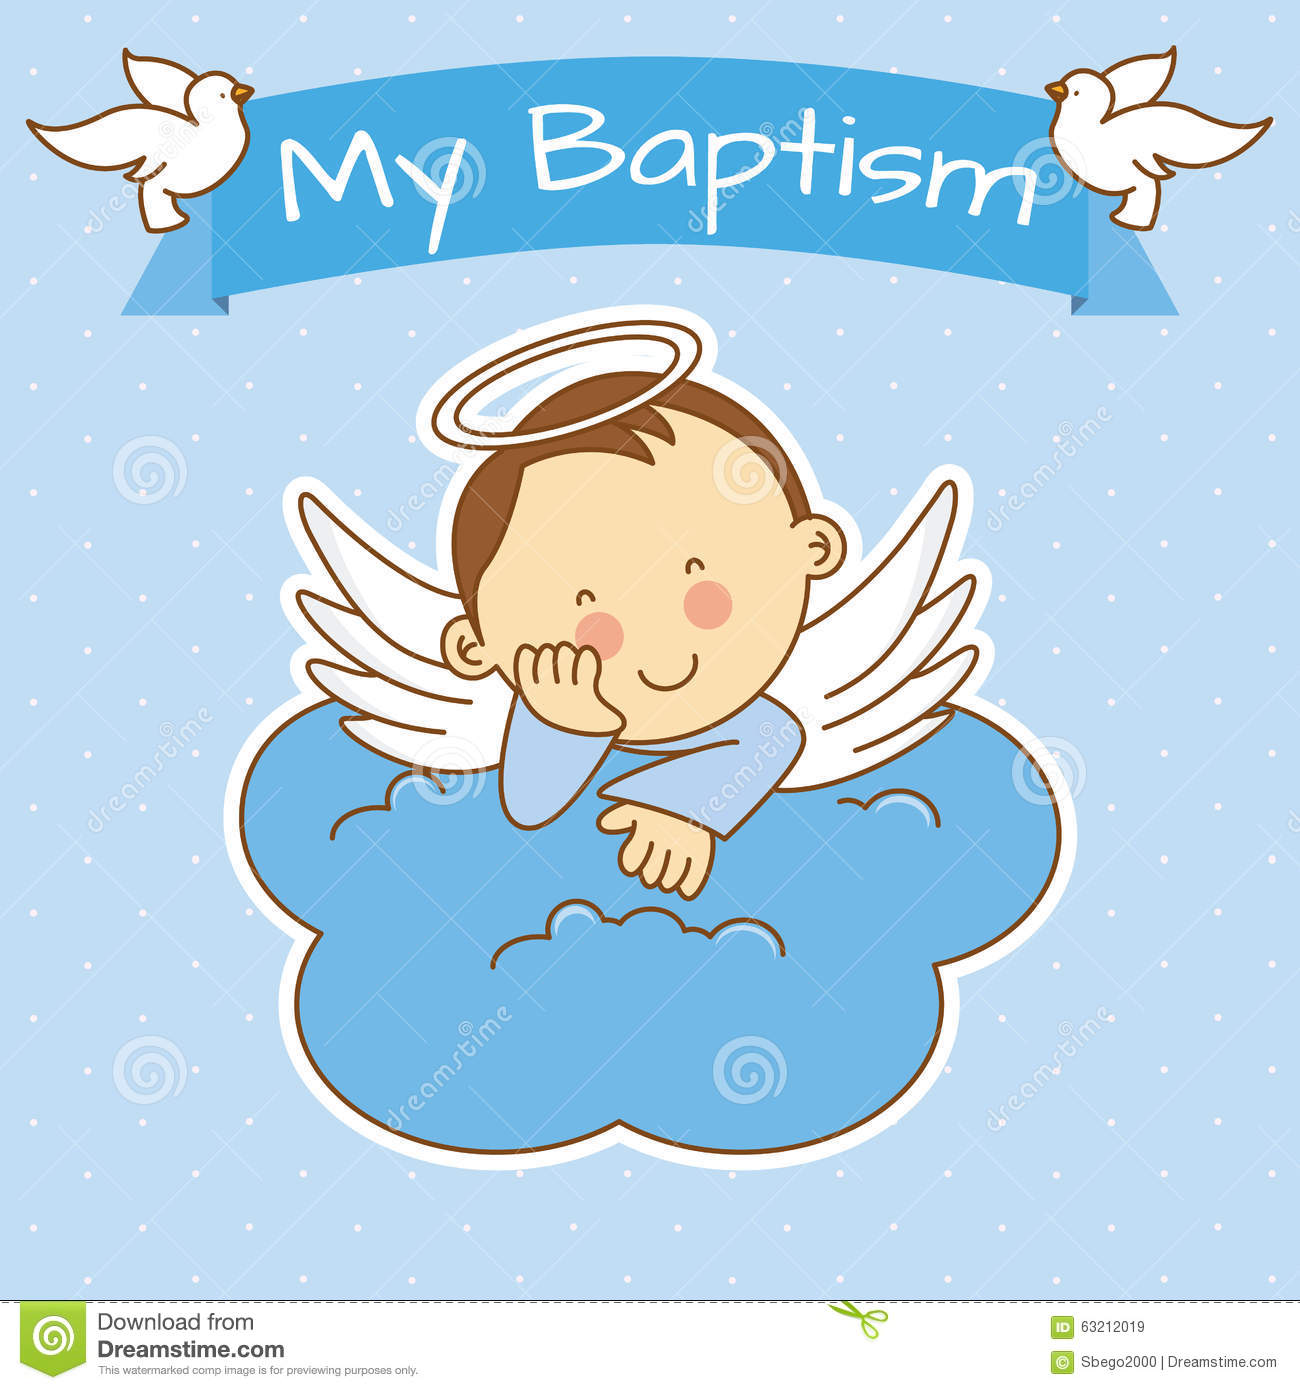 Christening and Baptism Clip Art.